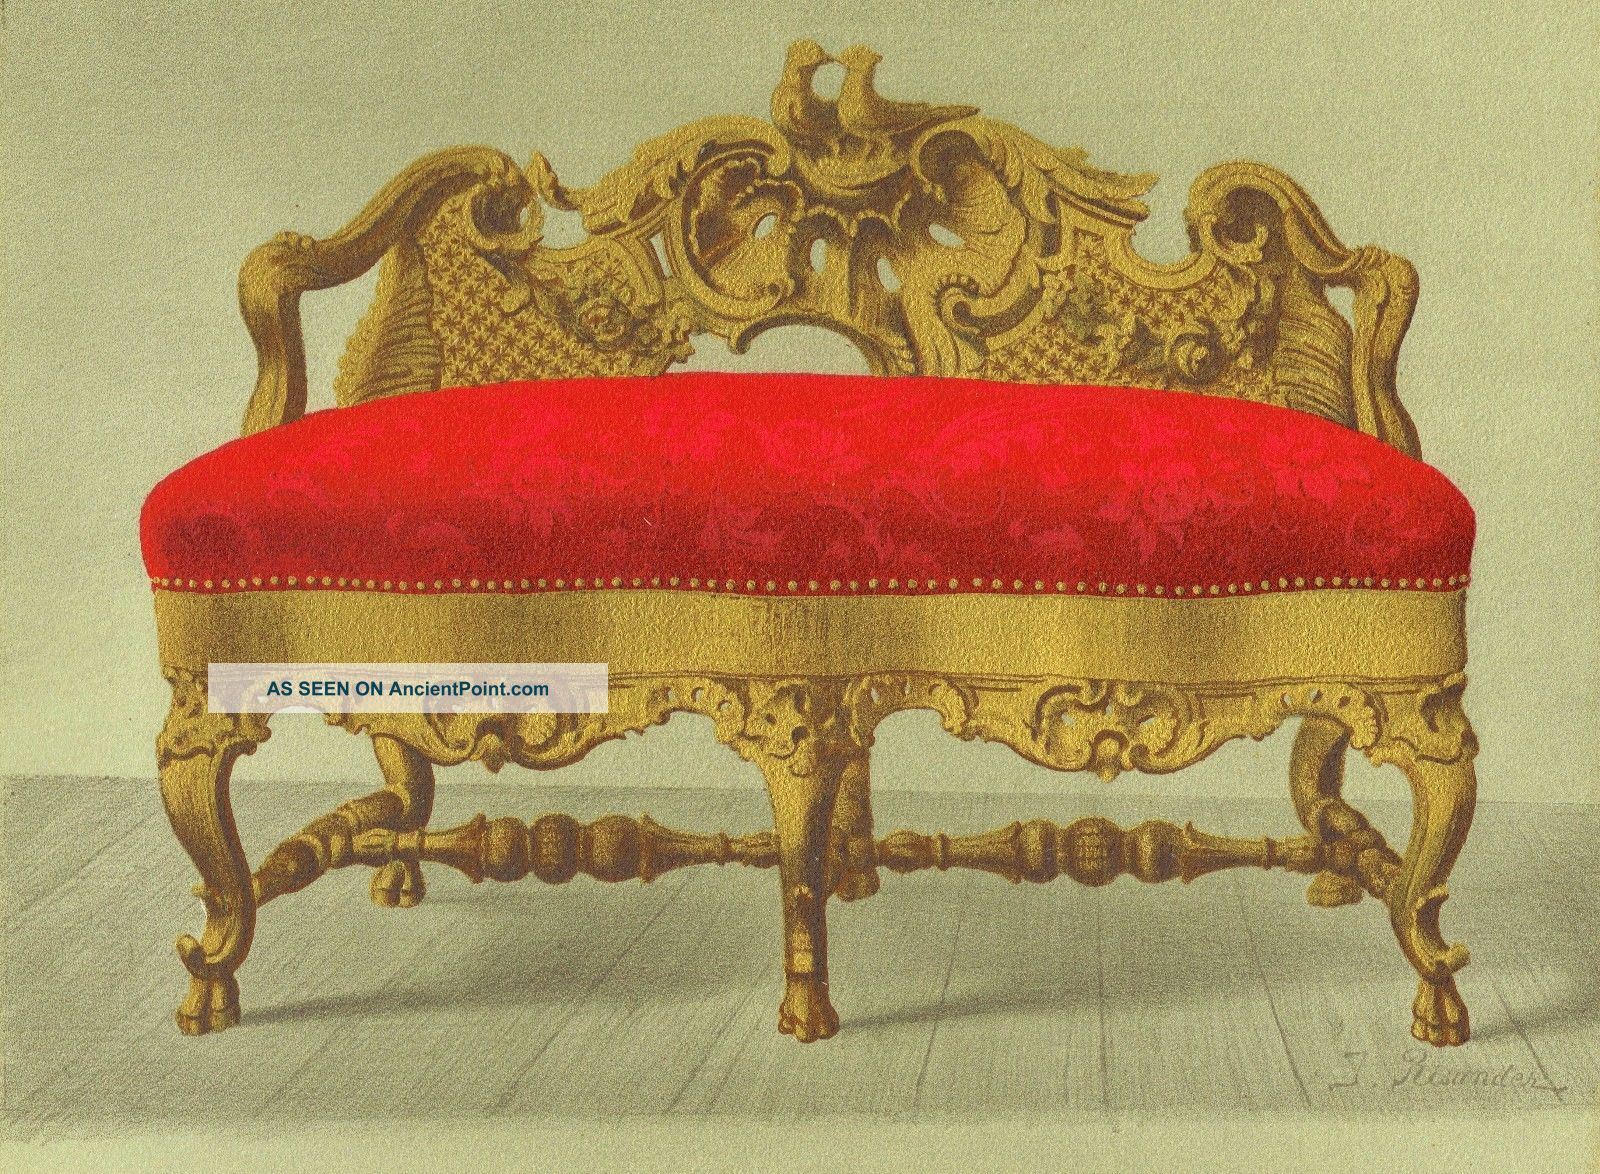 Rococo Style Sofa - Gold Walnut Furniture Decor Art Antique Lithograph Print 1888 1800-1899 photo